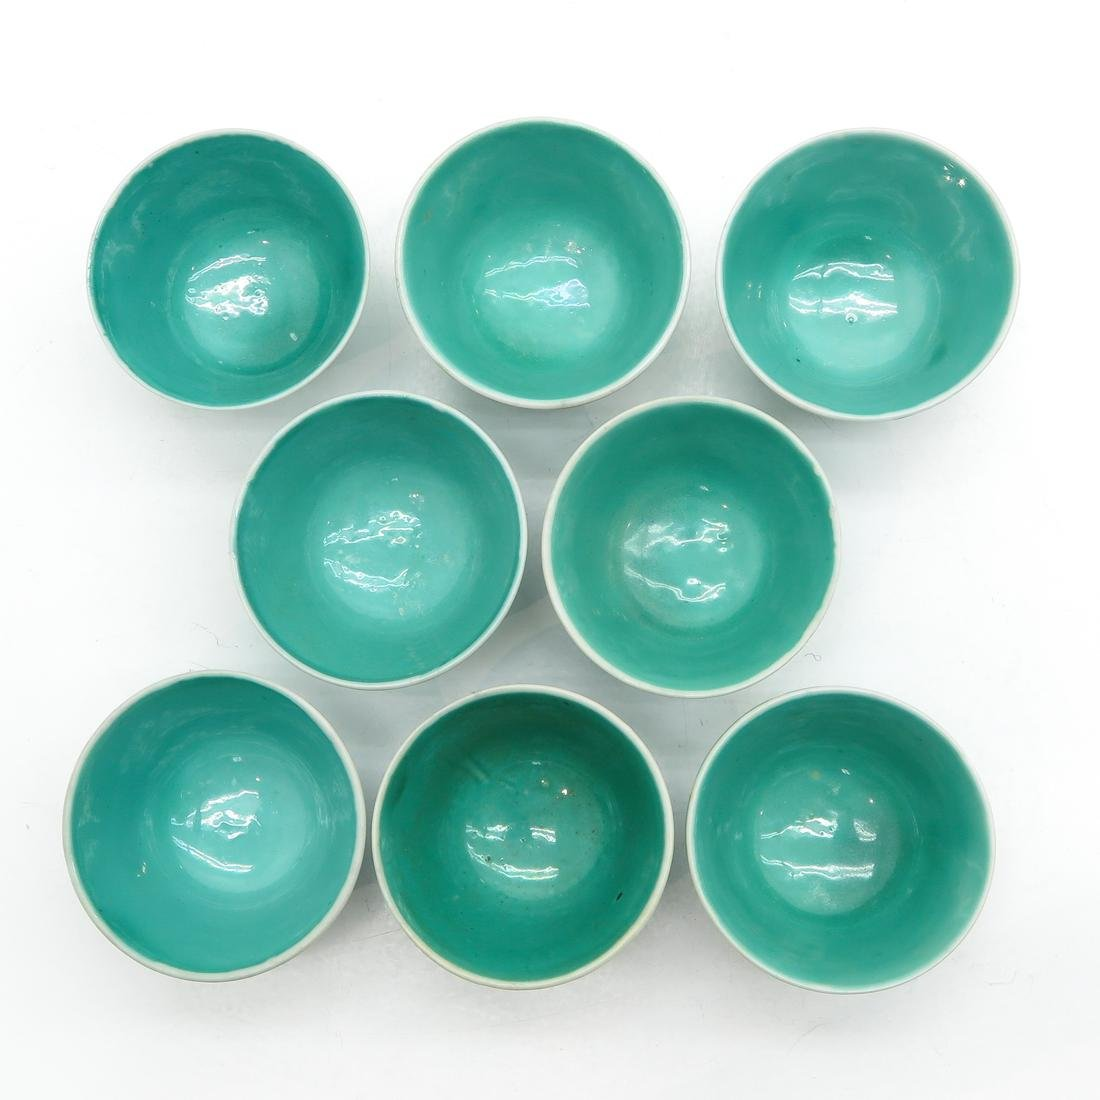 Lot of 8 Cups - 5